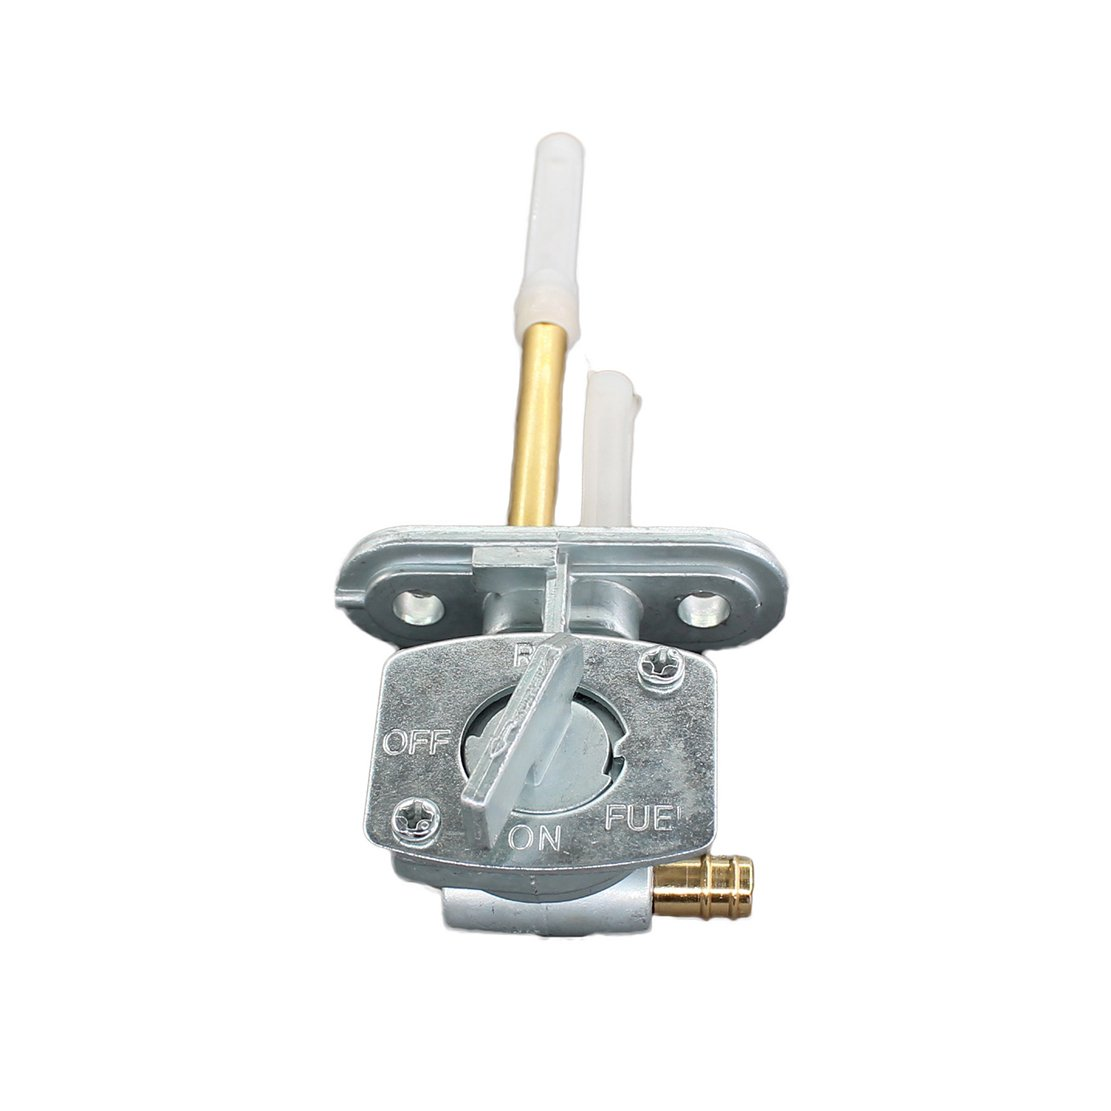 USPEEDA Gas Fuel Switch Petcock Valve Shutoff for Yamaha YFM50 YFM80 YFM100 YFZ450 YFZ 450 YF60 YTM225 YTM200 YFM250 YFM350 YFM660 YFS200 Bear Tracker 250 Big Bear 250 350 Grizzly 600 Raptor 350